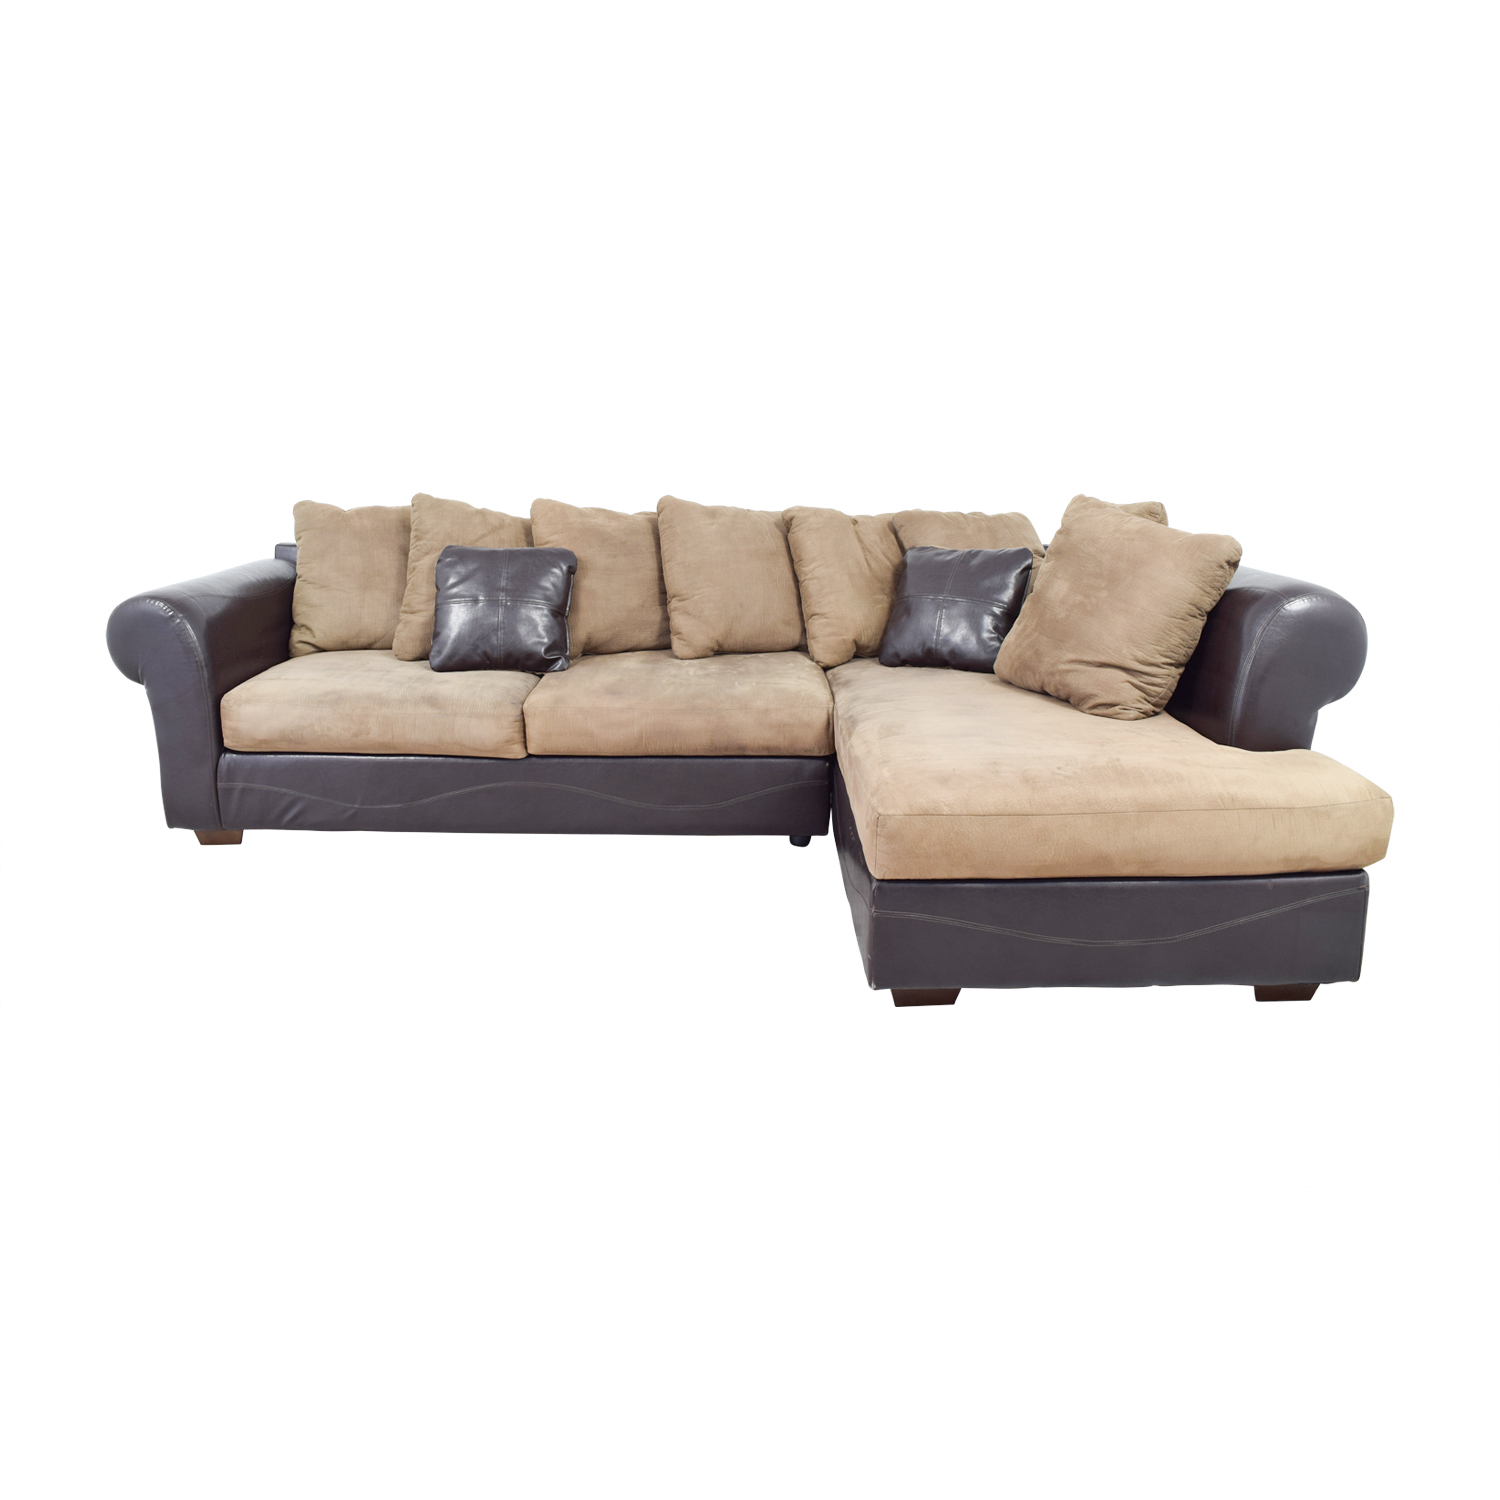 Sectional Bed Sofa 68 Off Ashley Furniture Ashley Furniture Brown Leather And Tan Microfiber Chaise Sectional Sofas